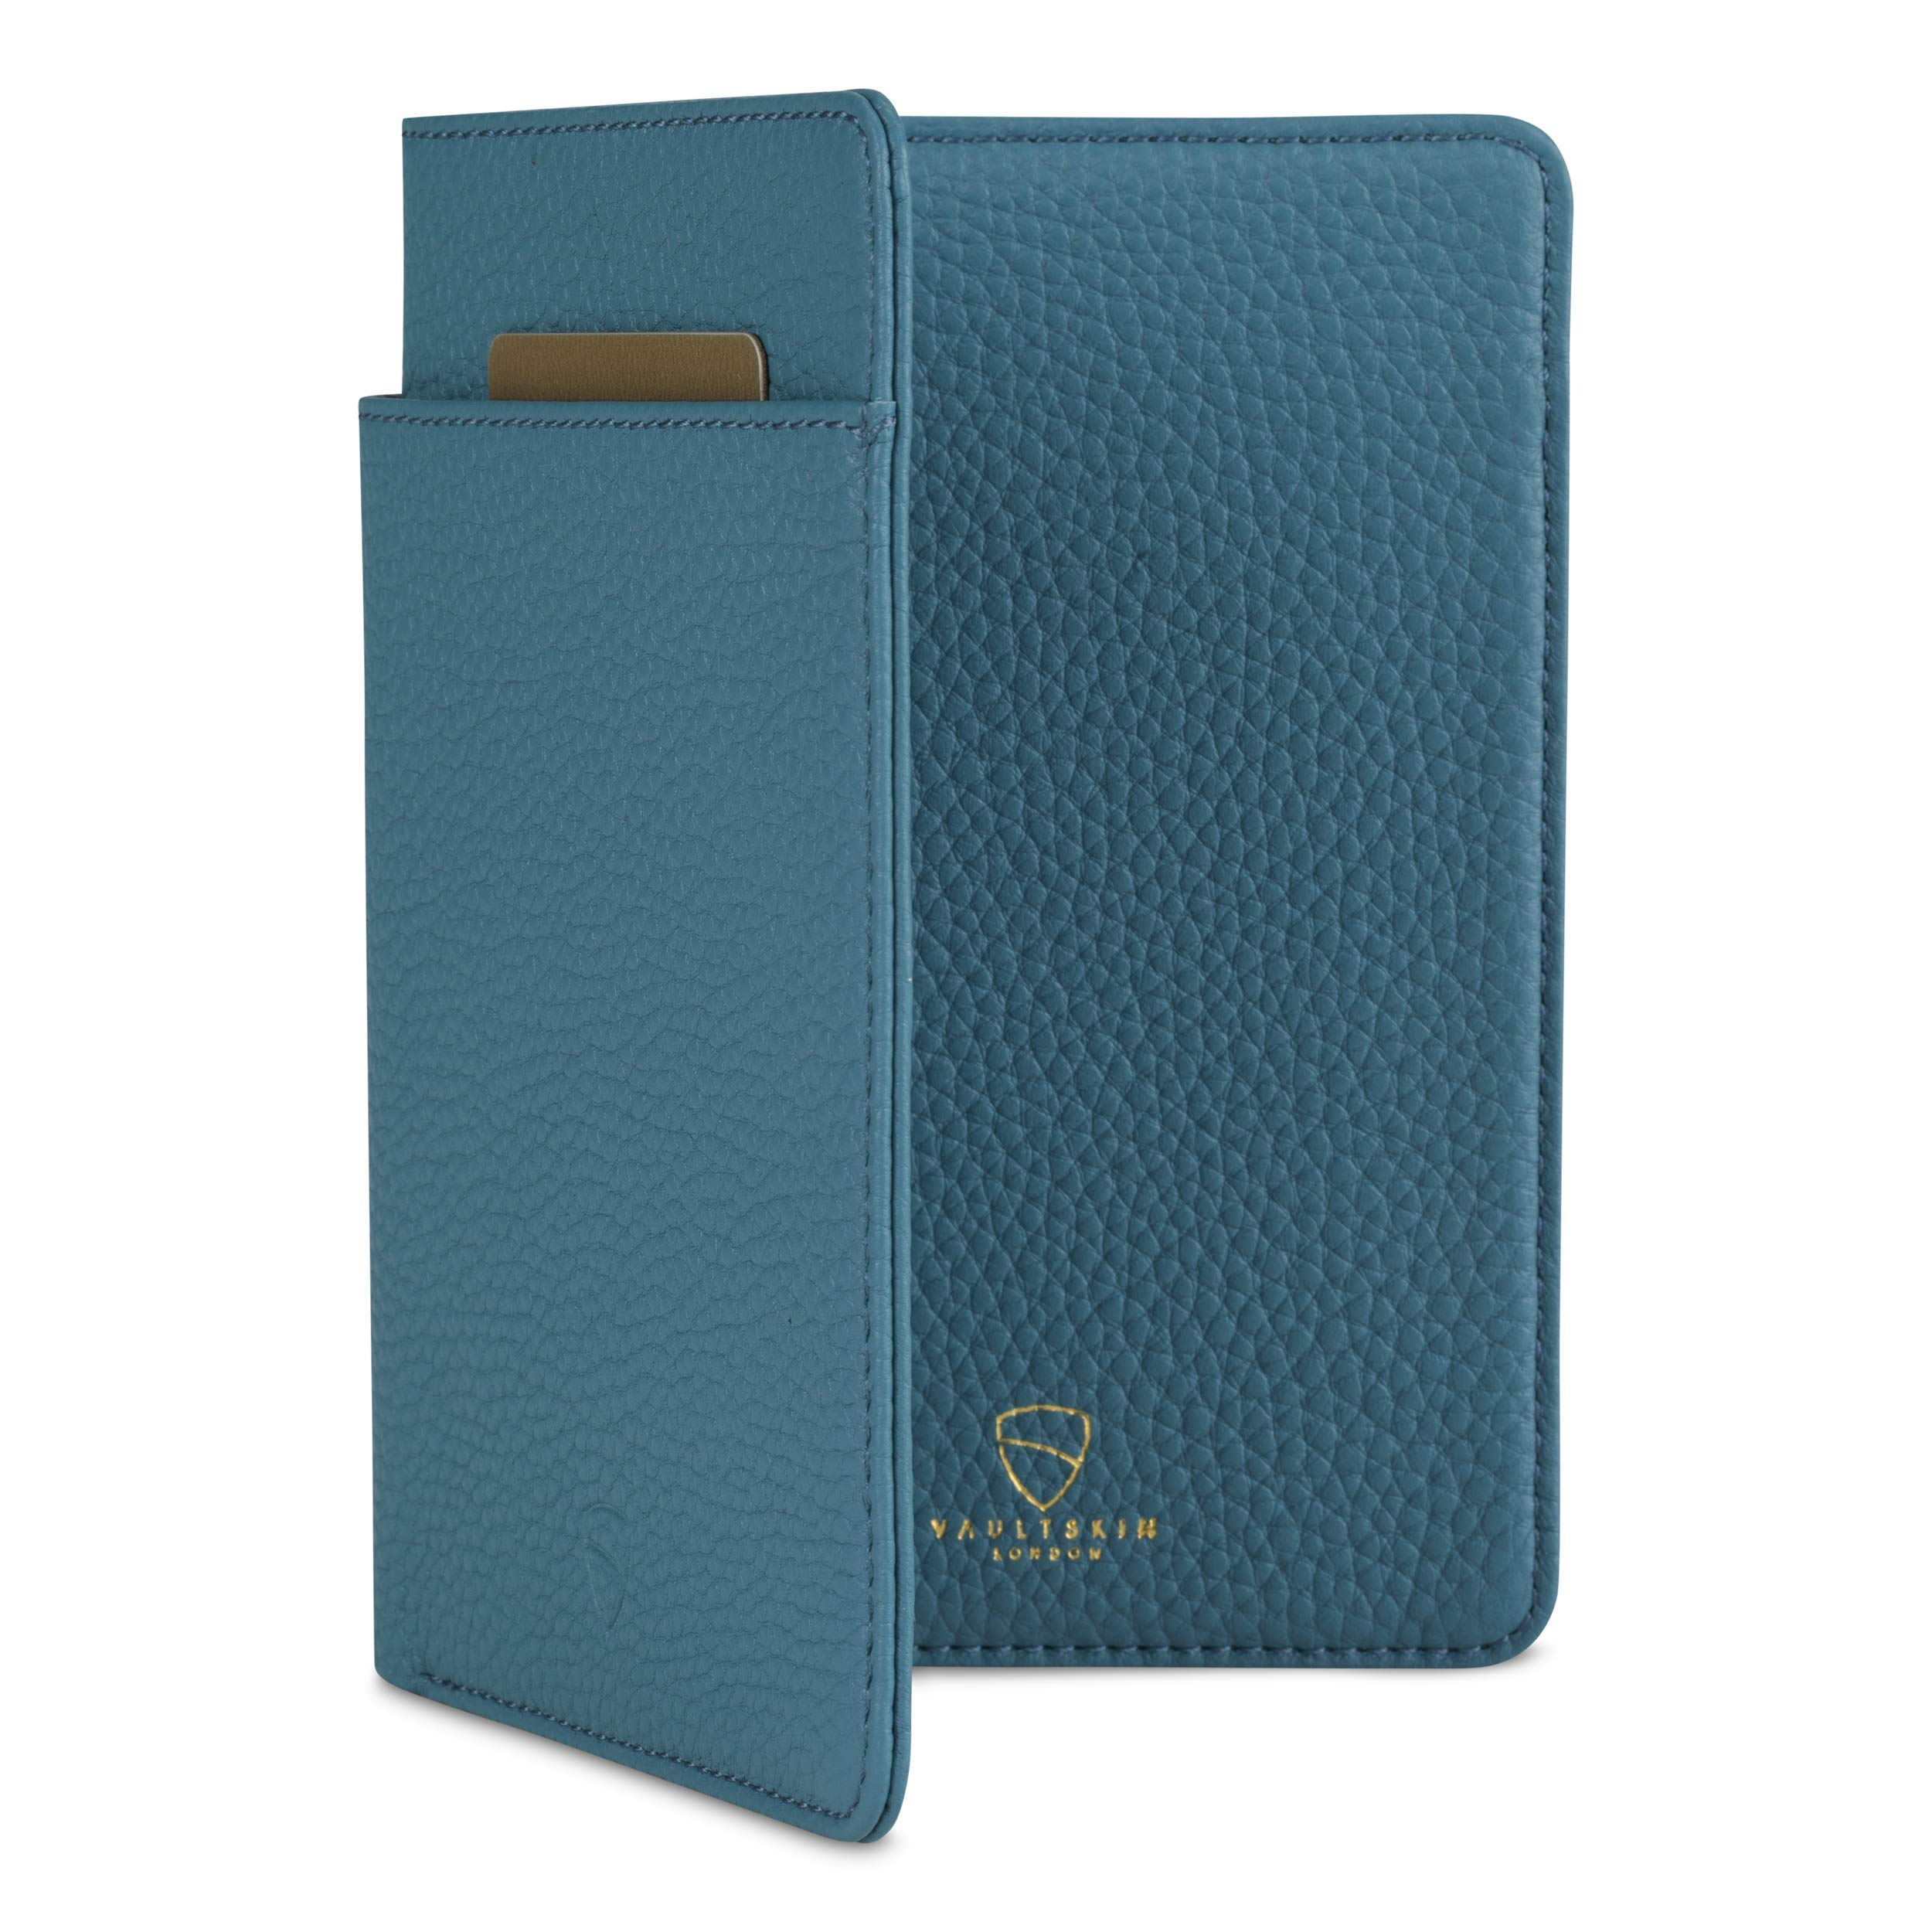 Vaultskin KENSINGTON Leather Passport Wallet with RFID Protection (Matt Turquoise) by Vaultskin